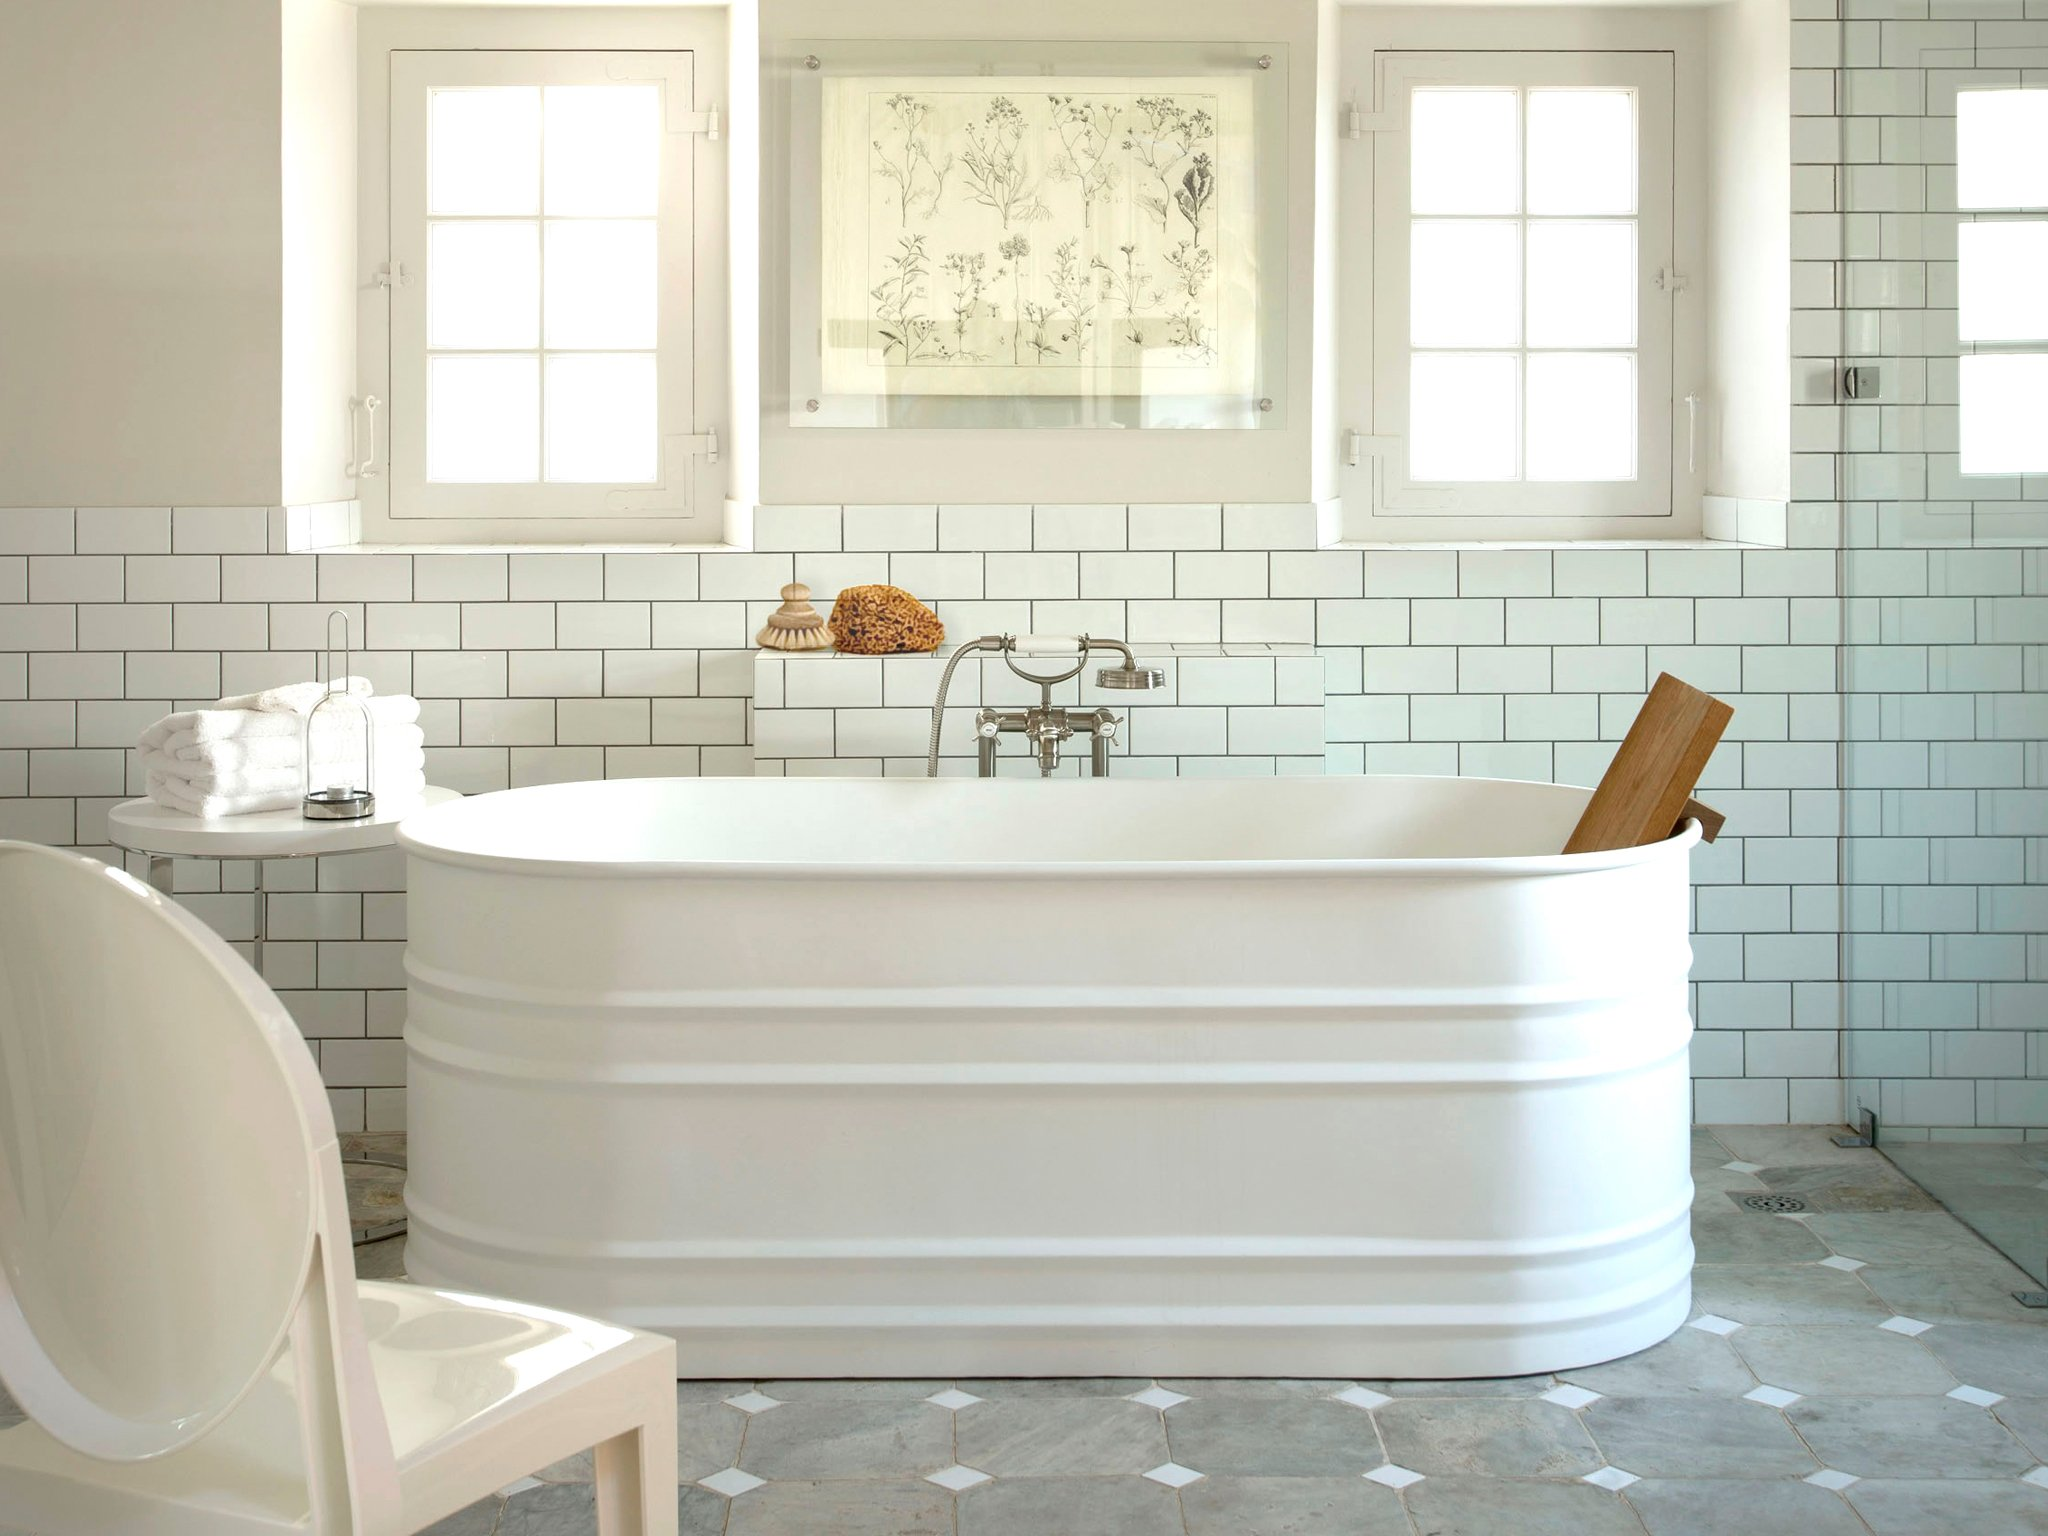 romantic lodges in Africa babylonstoren bath bathtub capewinelands franschhoek